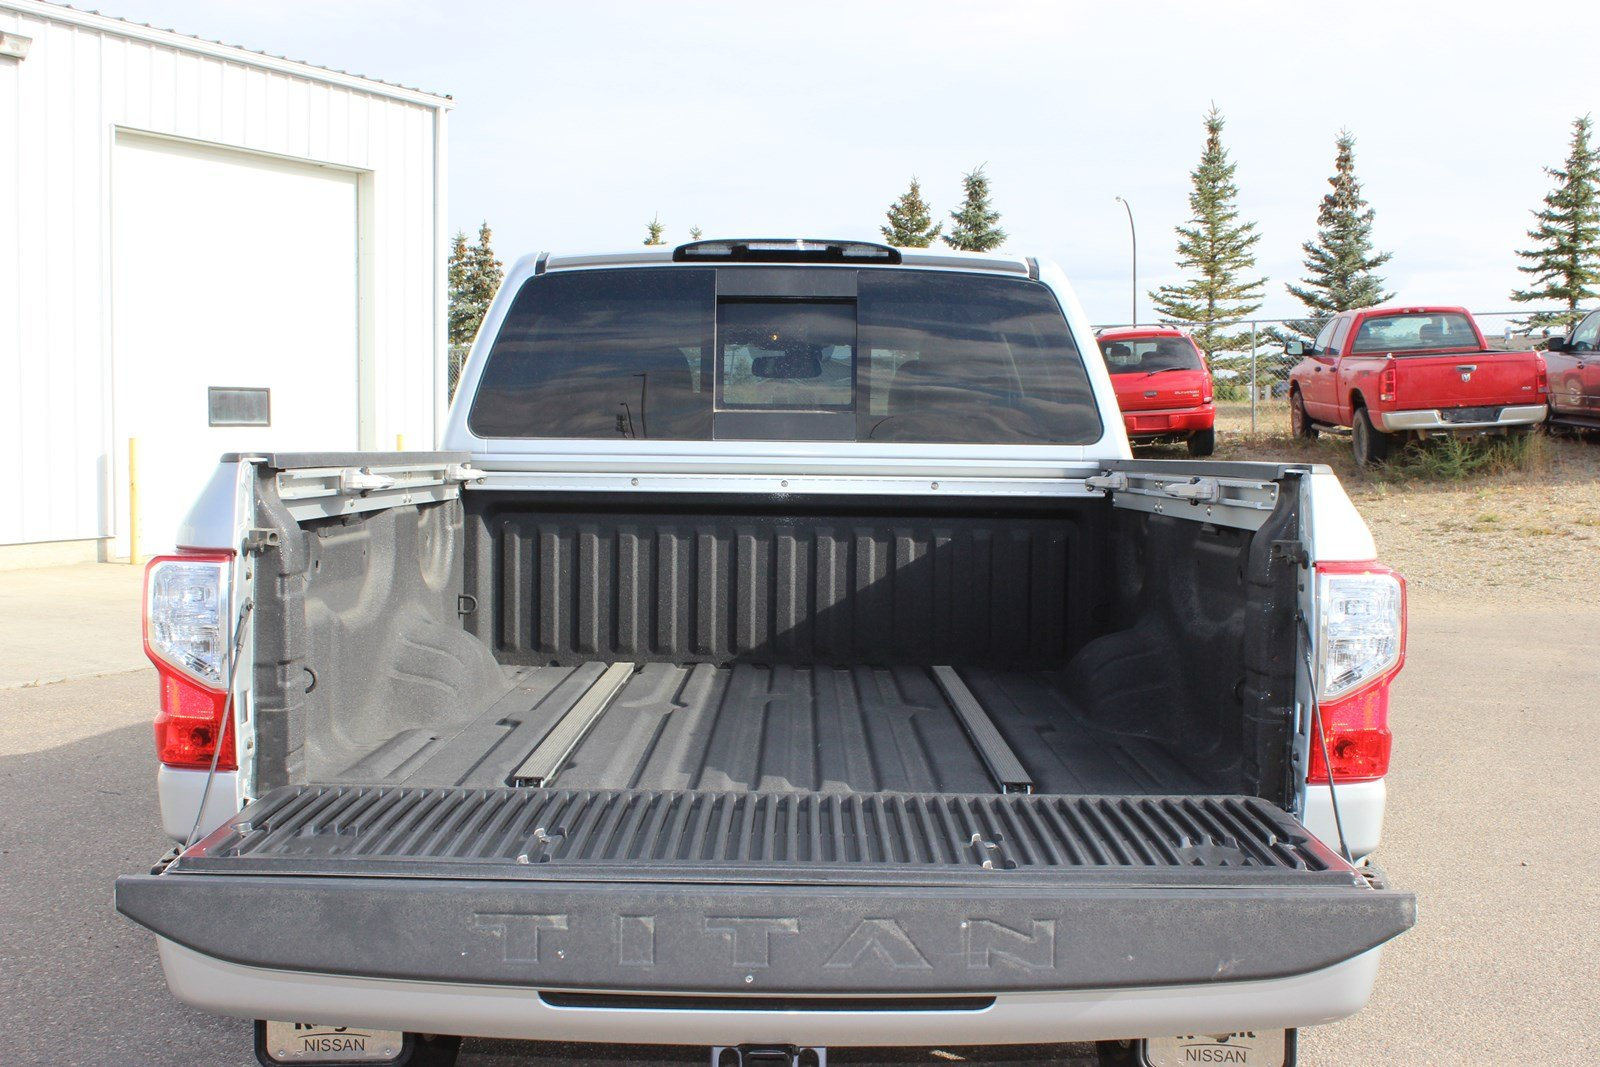 new 2017 nissan titan sl 5 year 160kms bumper to bumper warranty crew cab pickup near moose jaw. Black Bedroom Furniture Sets. Home Design Ideas